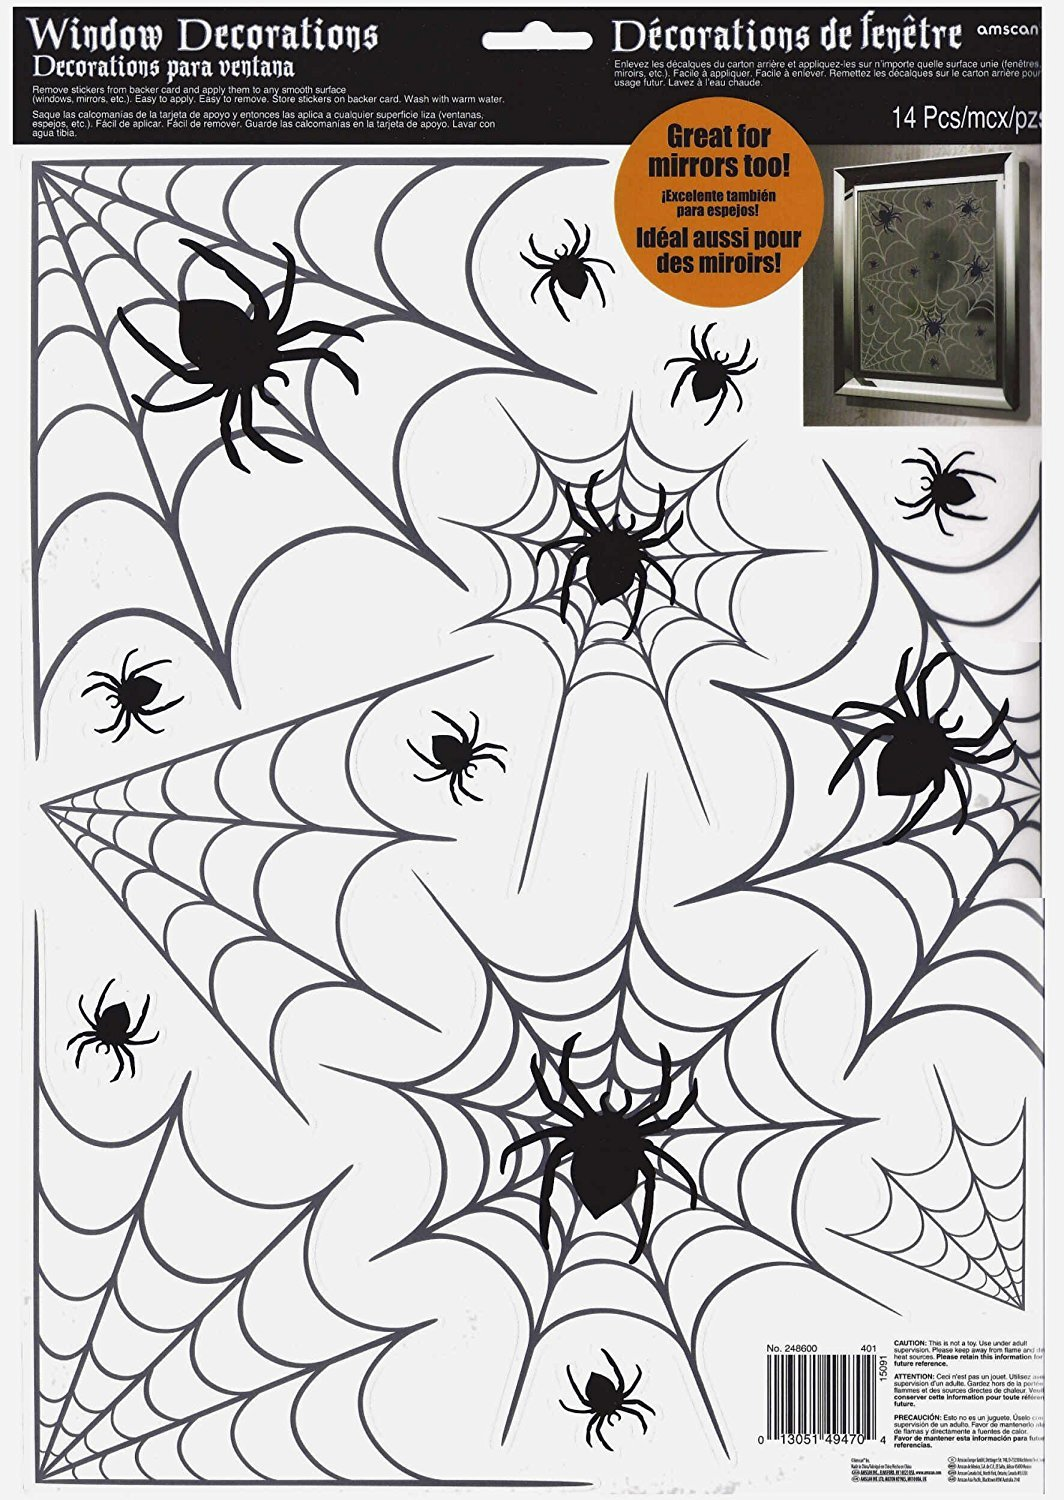 Amscan Halloween Spiders and Webs Vinyl Window Clings | 28 Count | Great for Party, Interior, and Mirror Decorations